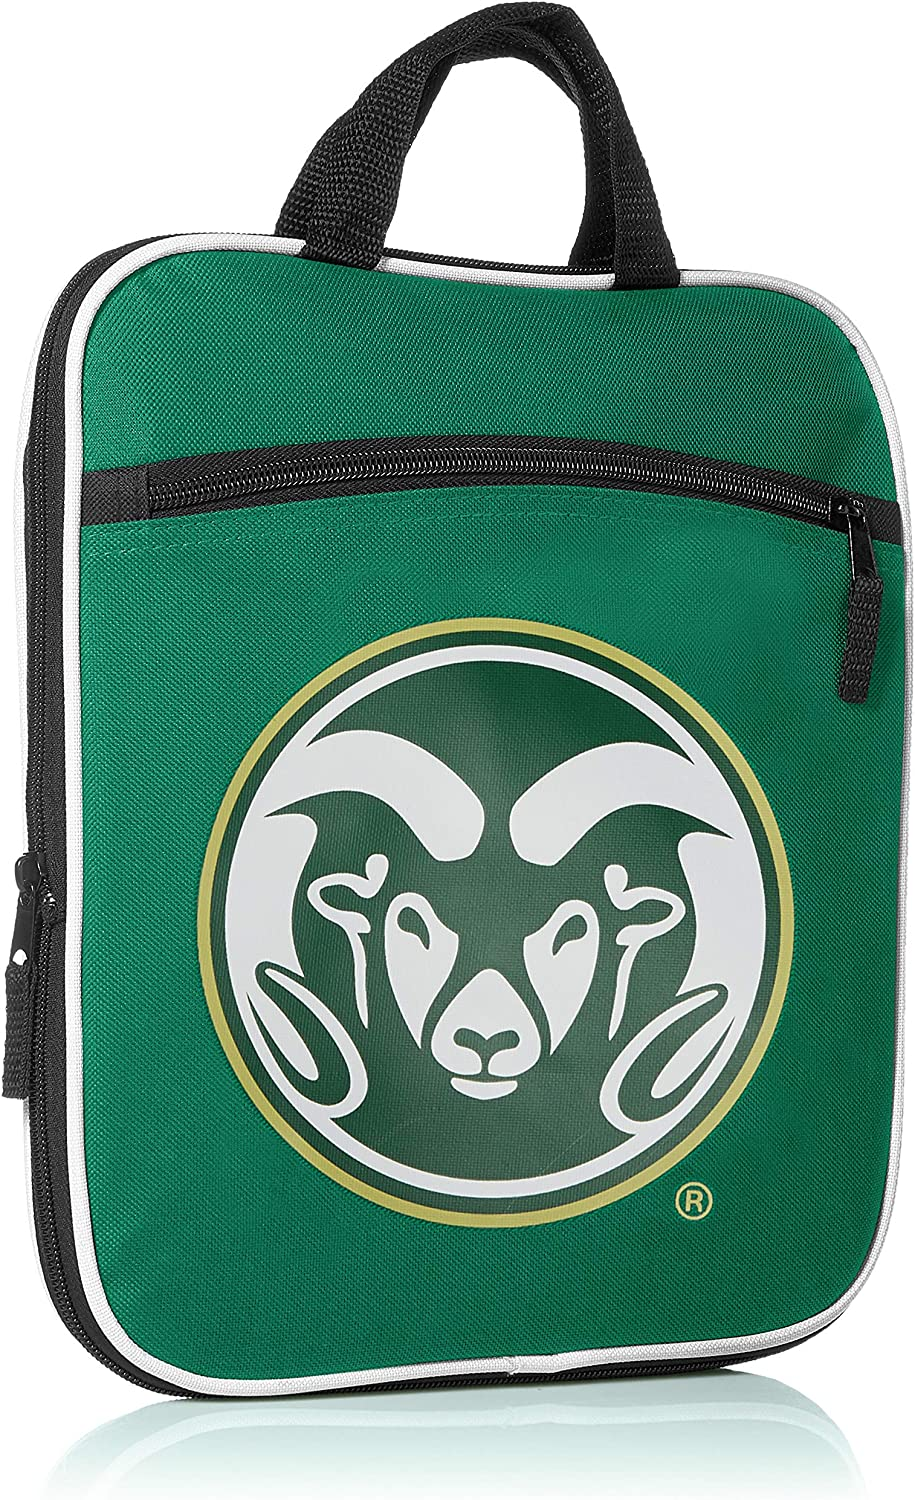 Multi Color 28 Offically Licensed NCAA Steal Duffel Bag